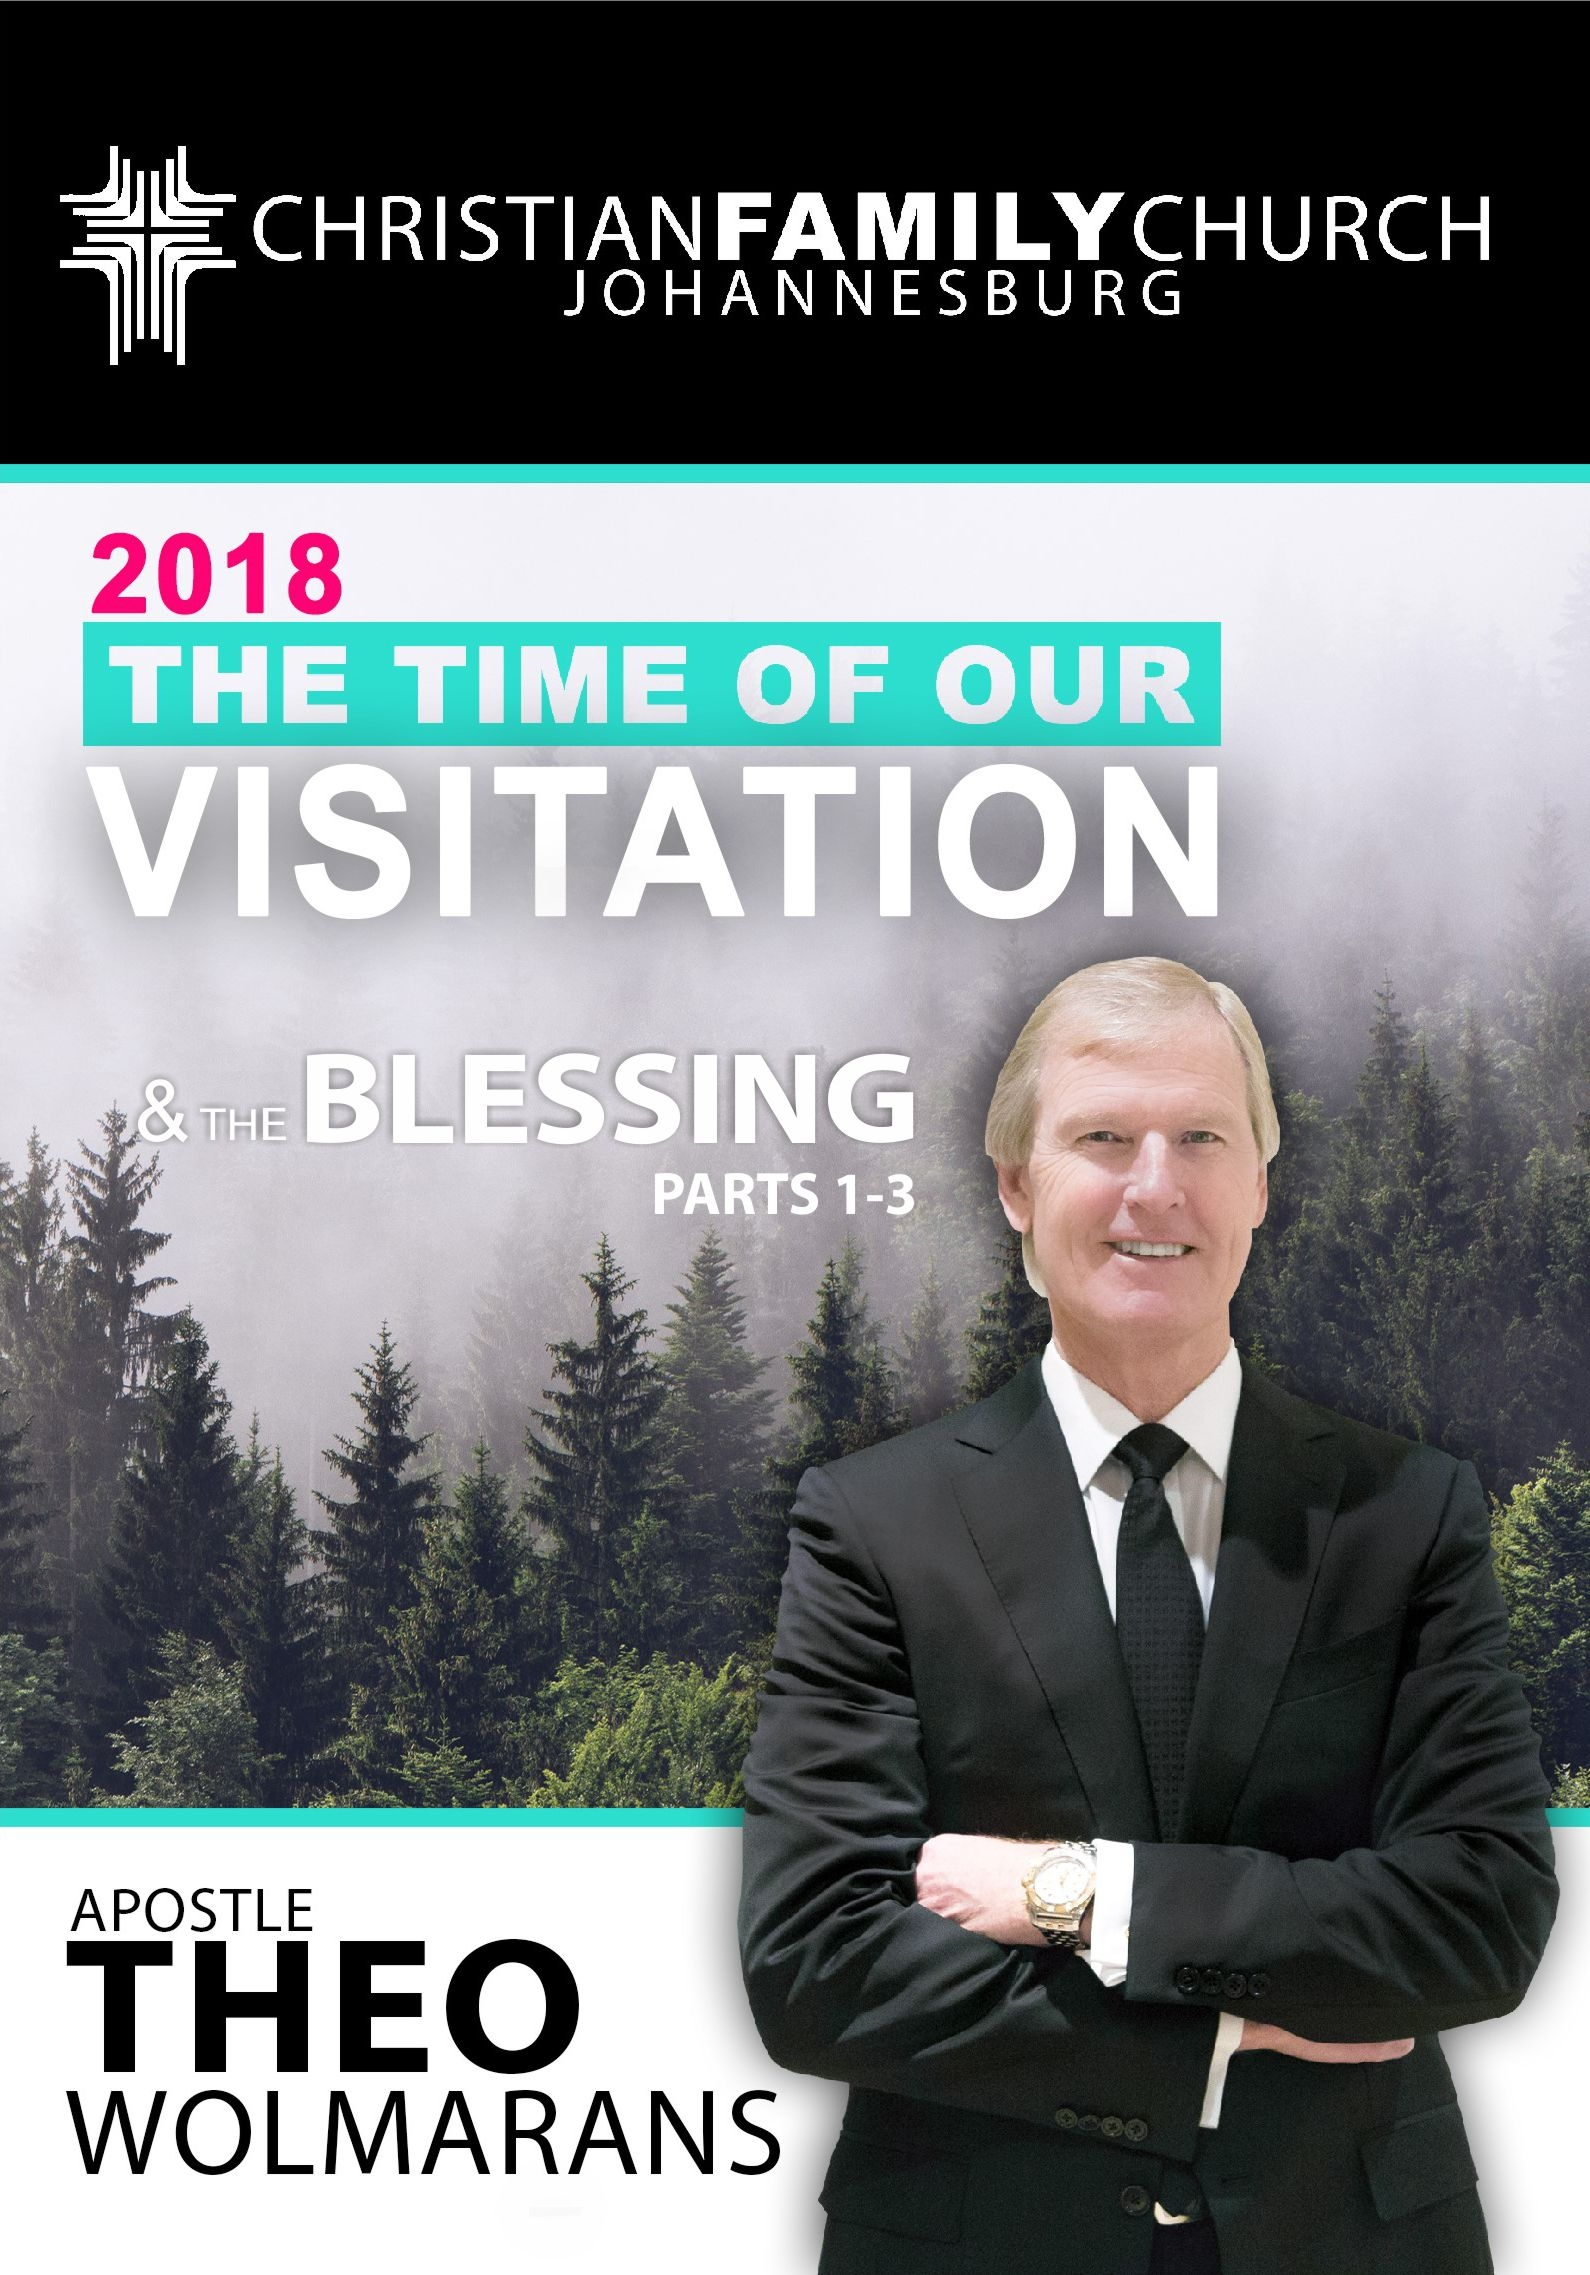 DR THEO WOLMARANS – 2018THE TIME OF OUR VISITATION-CDSETS